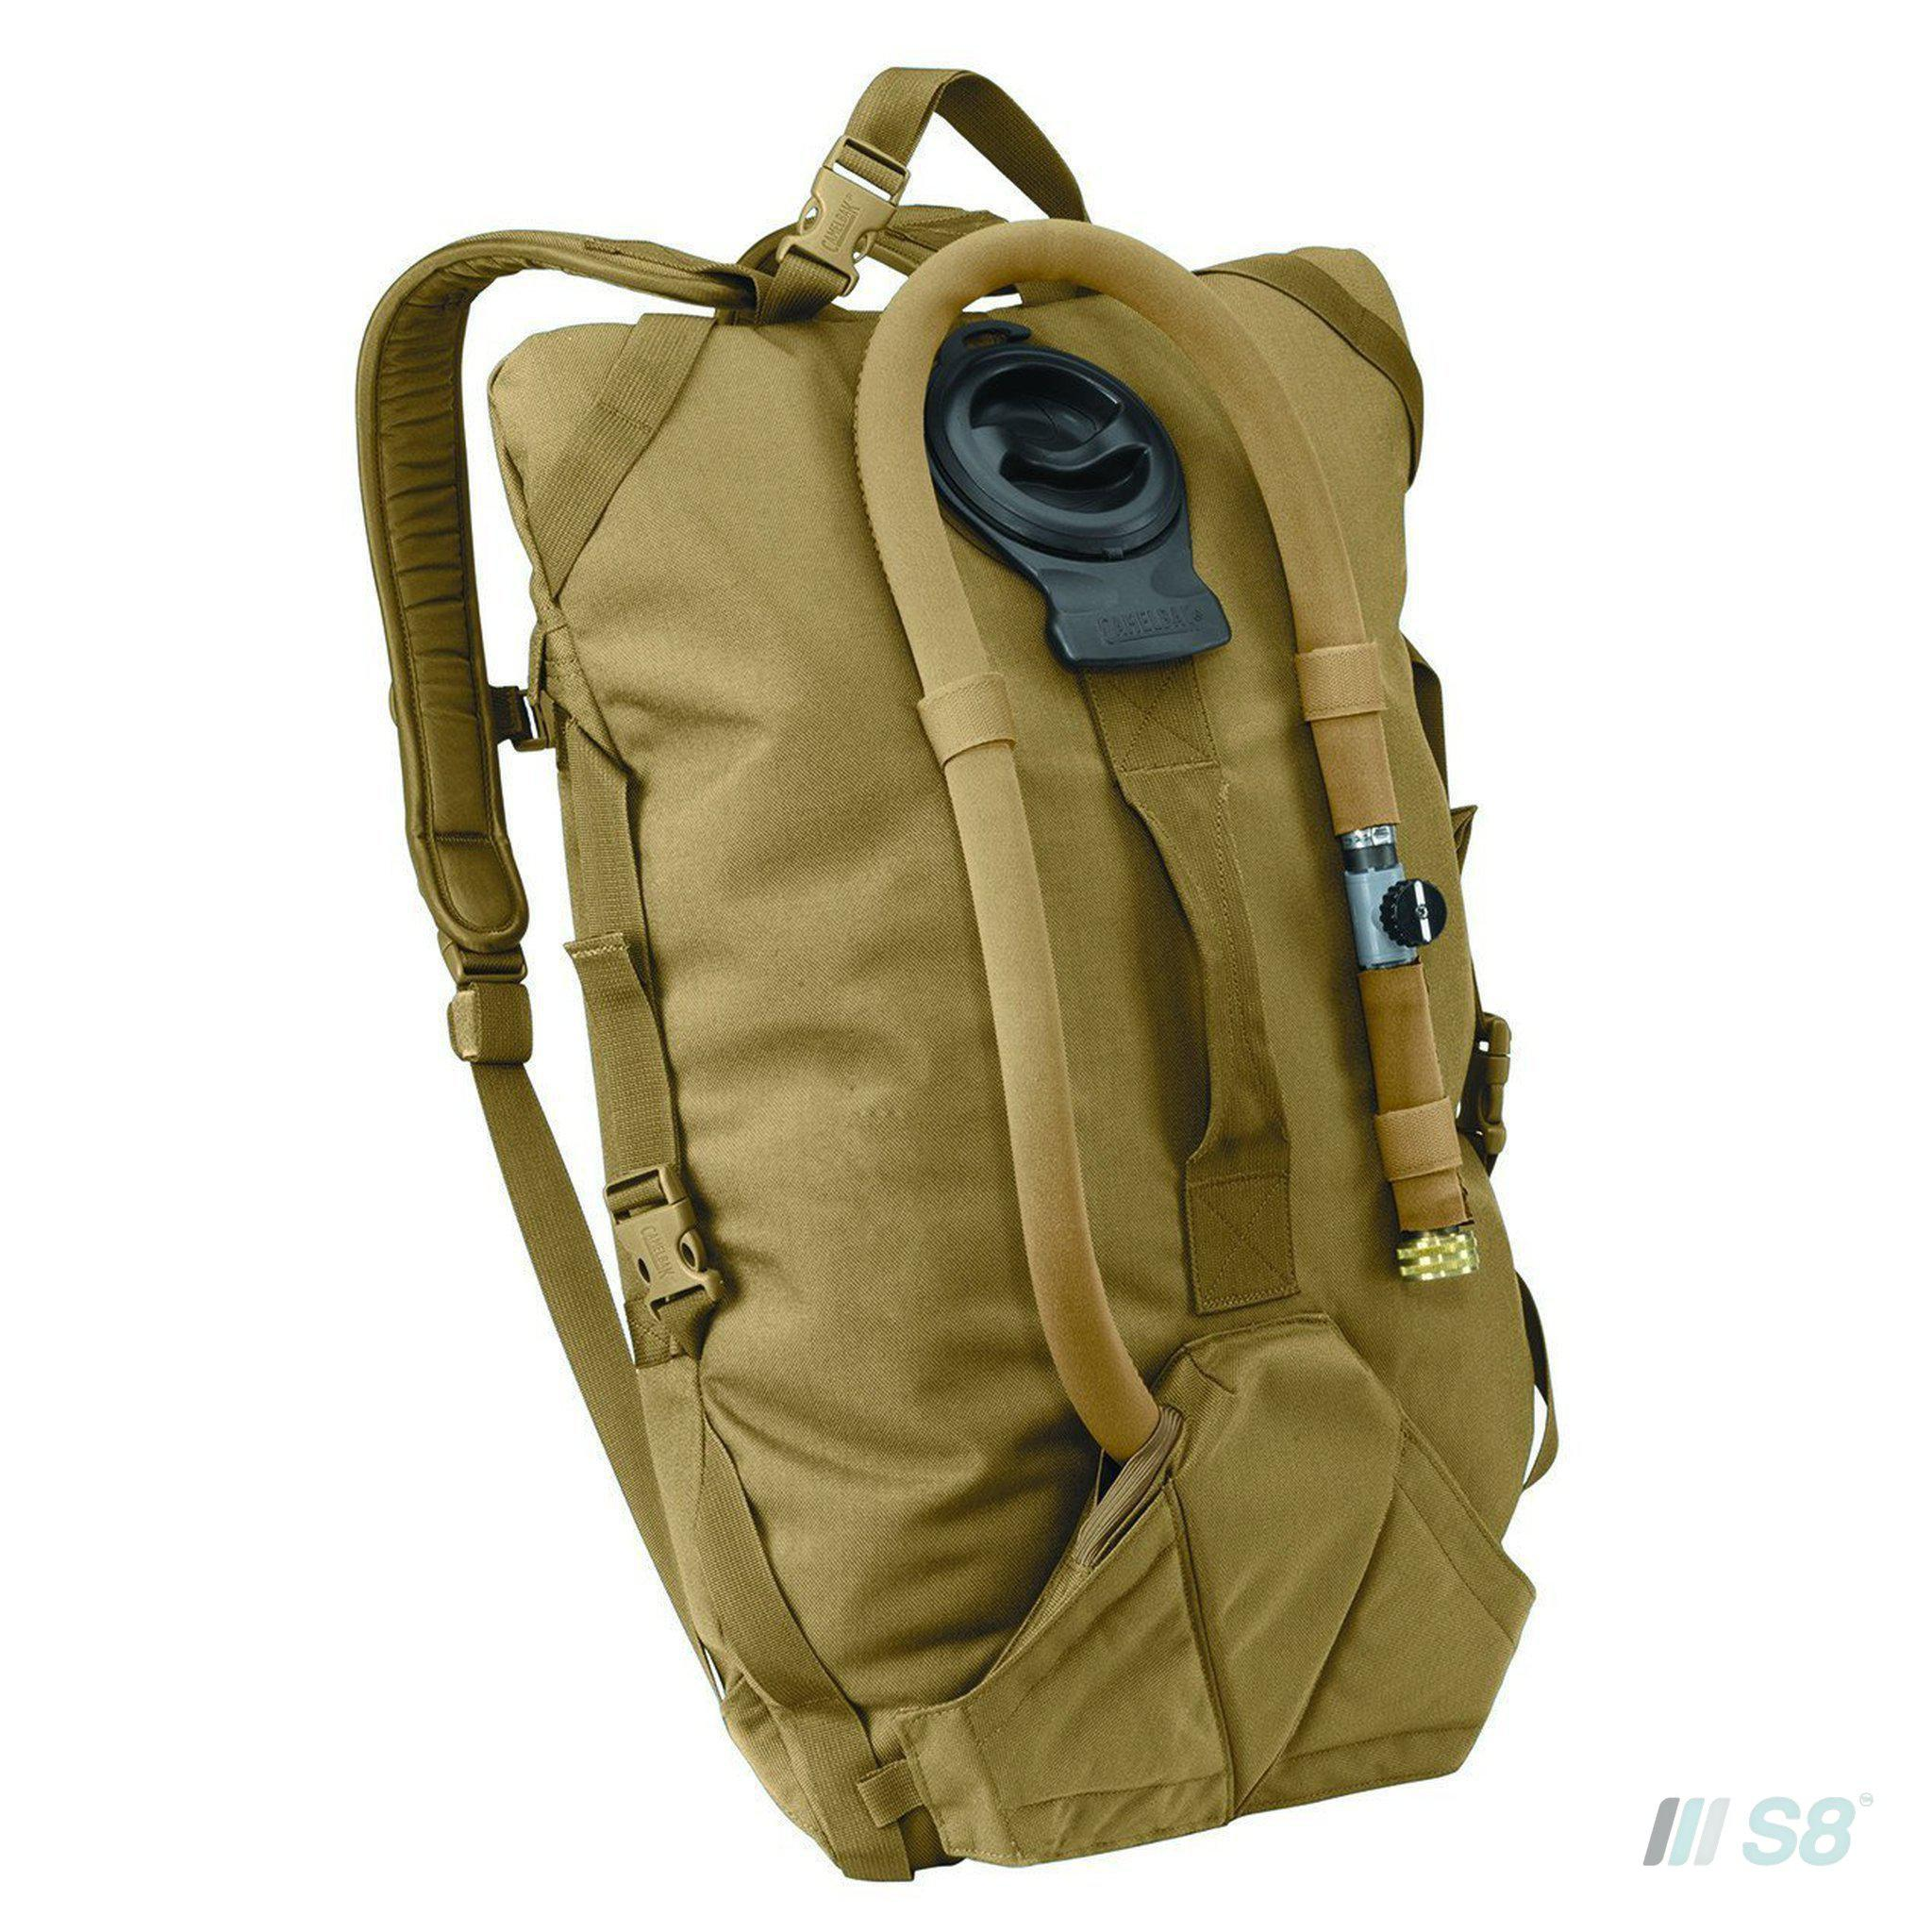 SquadBak-Camelbak-S8 Products Group